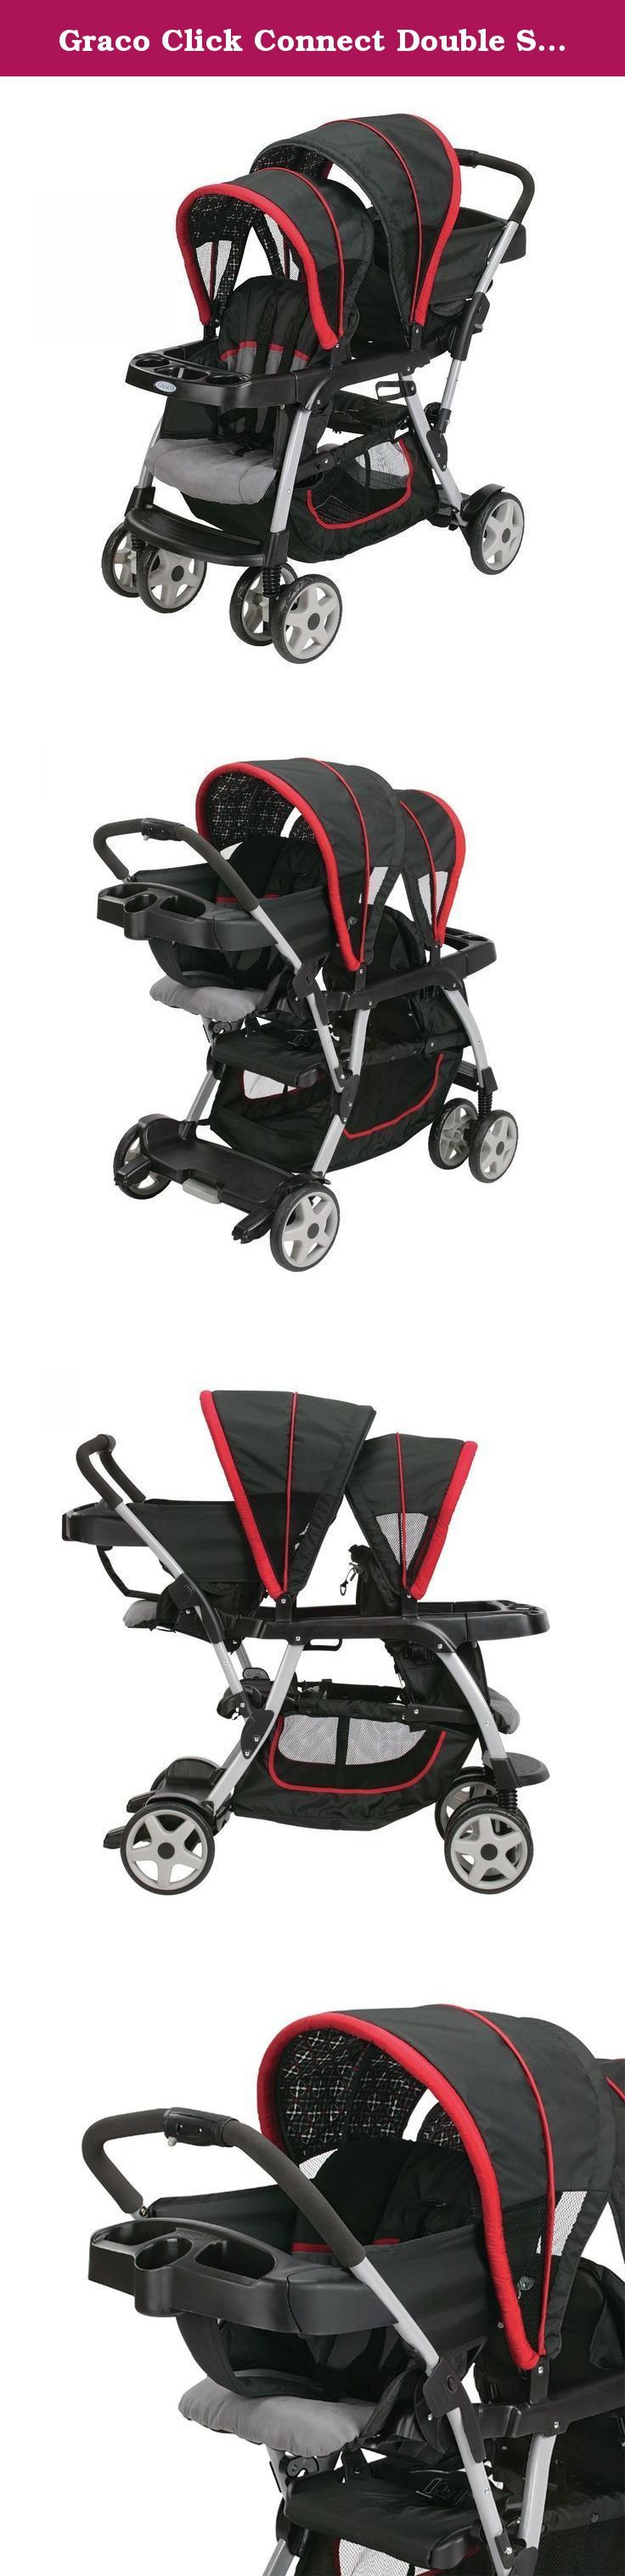 Graco Click Connect Double Seated Stroller and 2 Car Seats